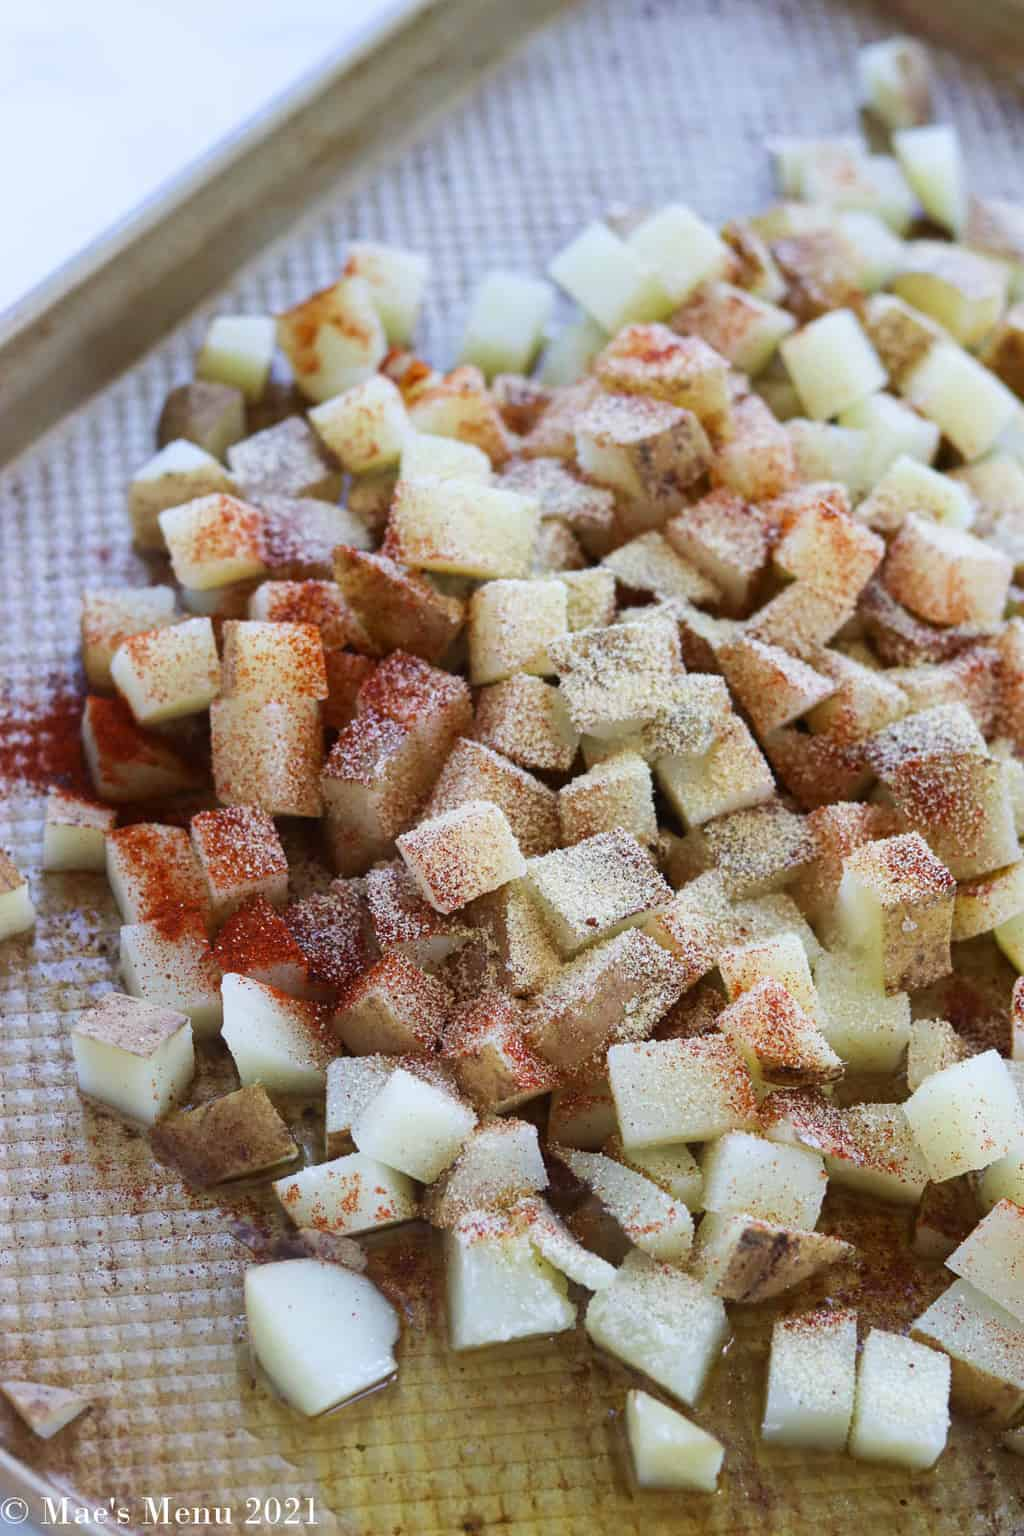 Potatoes on a baking sheet with the seasoning blend